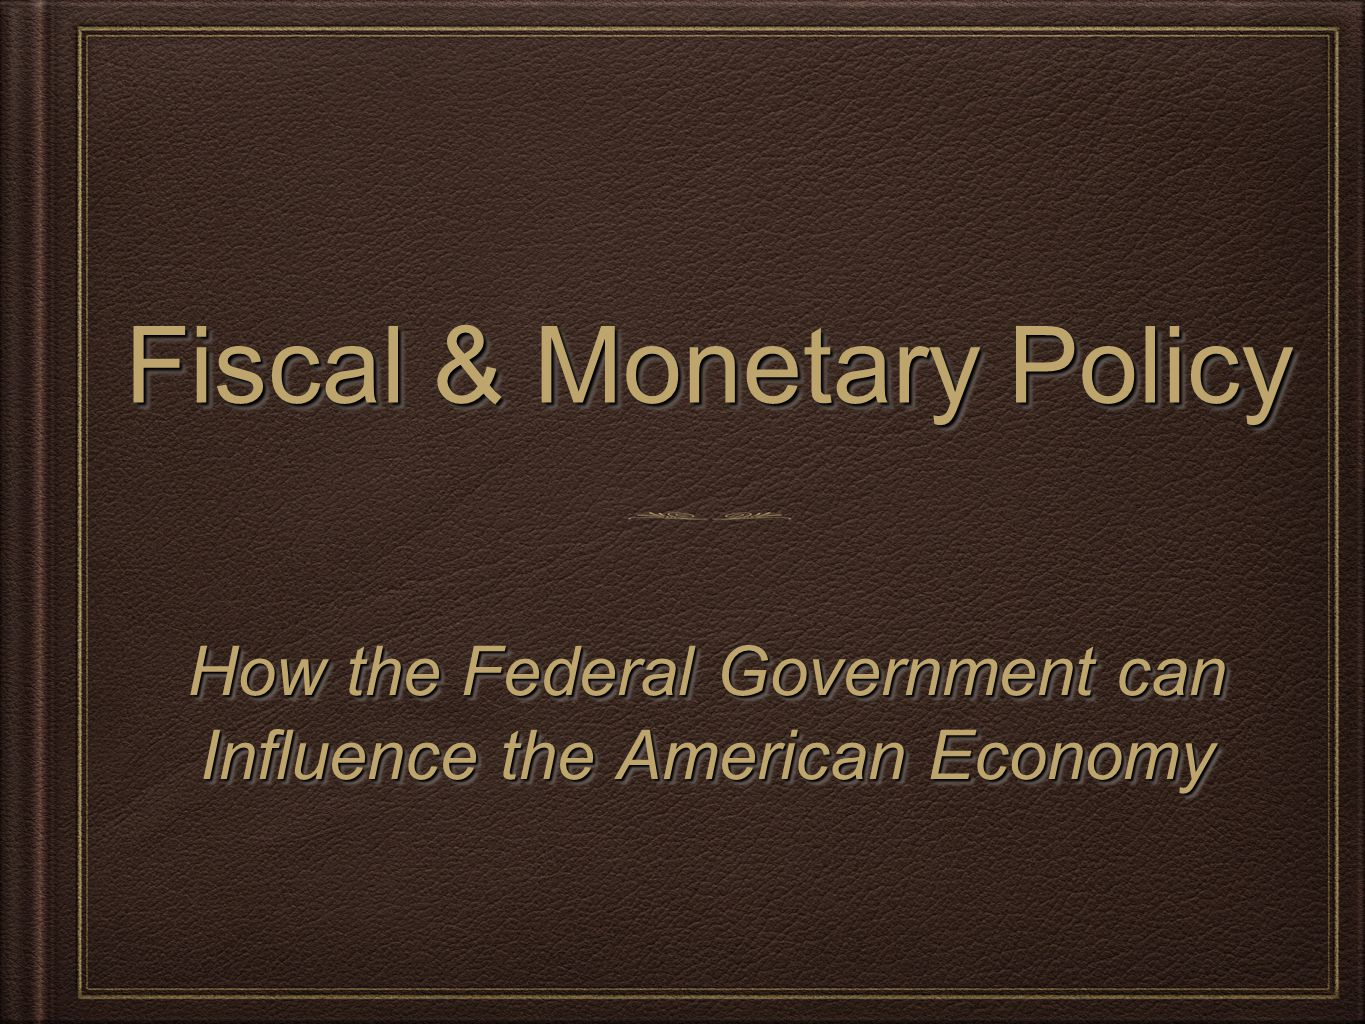 Fiscal & Monetary Policy How the Federal Government can Influence the American Economy How the Federal Government can Influence the American Economy